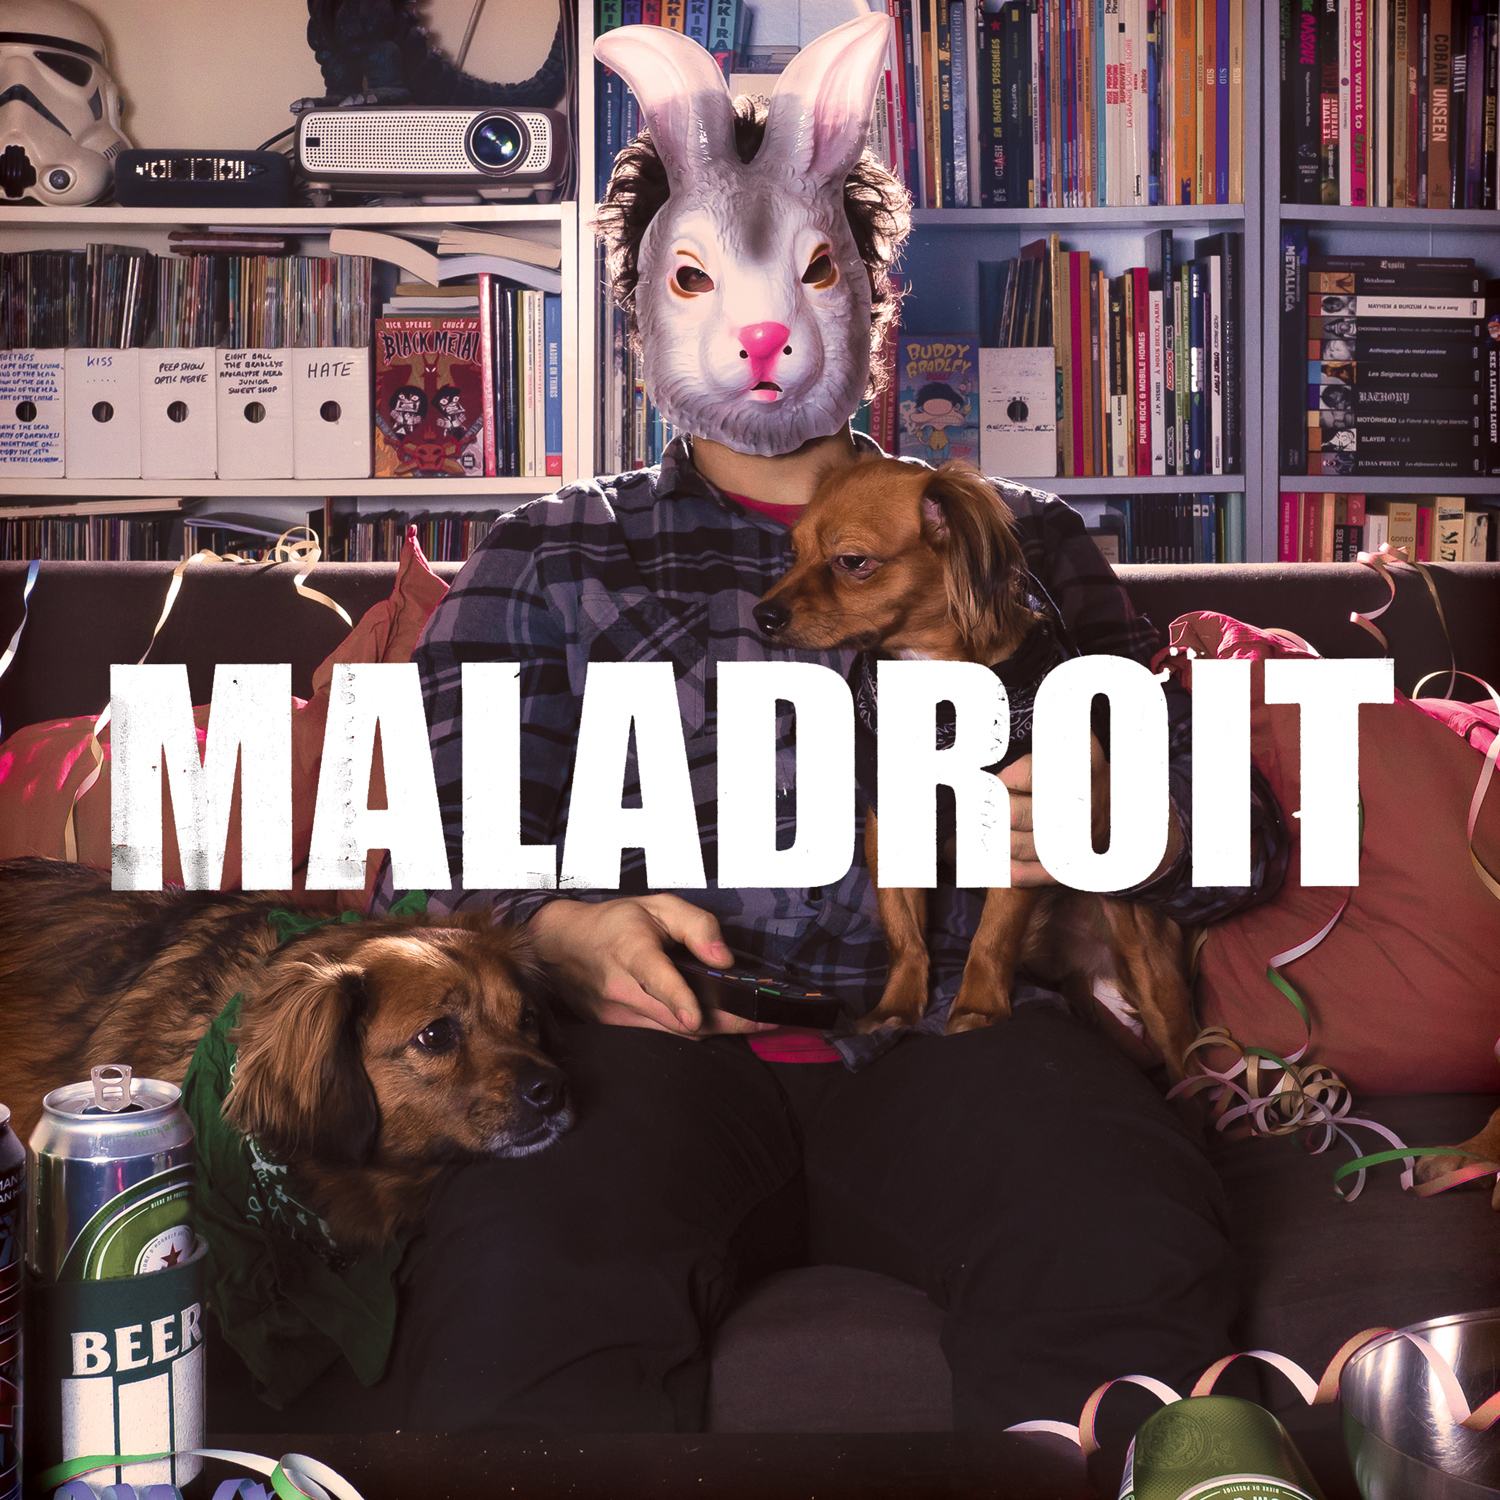 Maladroit - freedom fries and freedom kisses